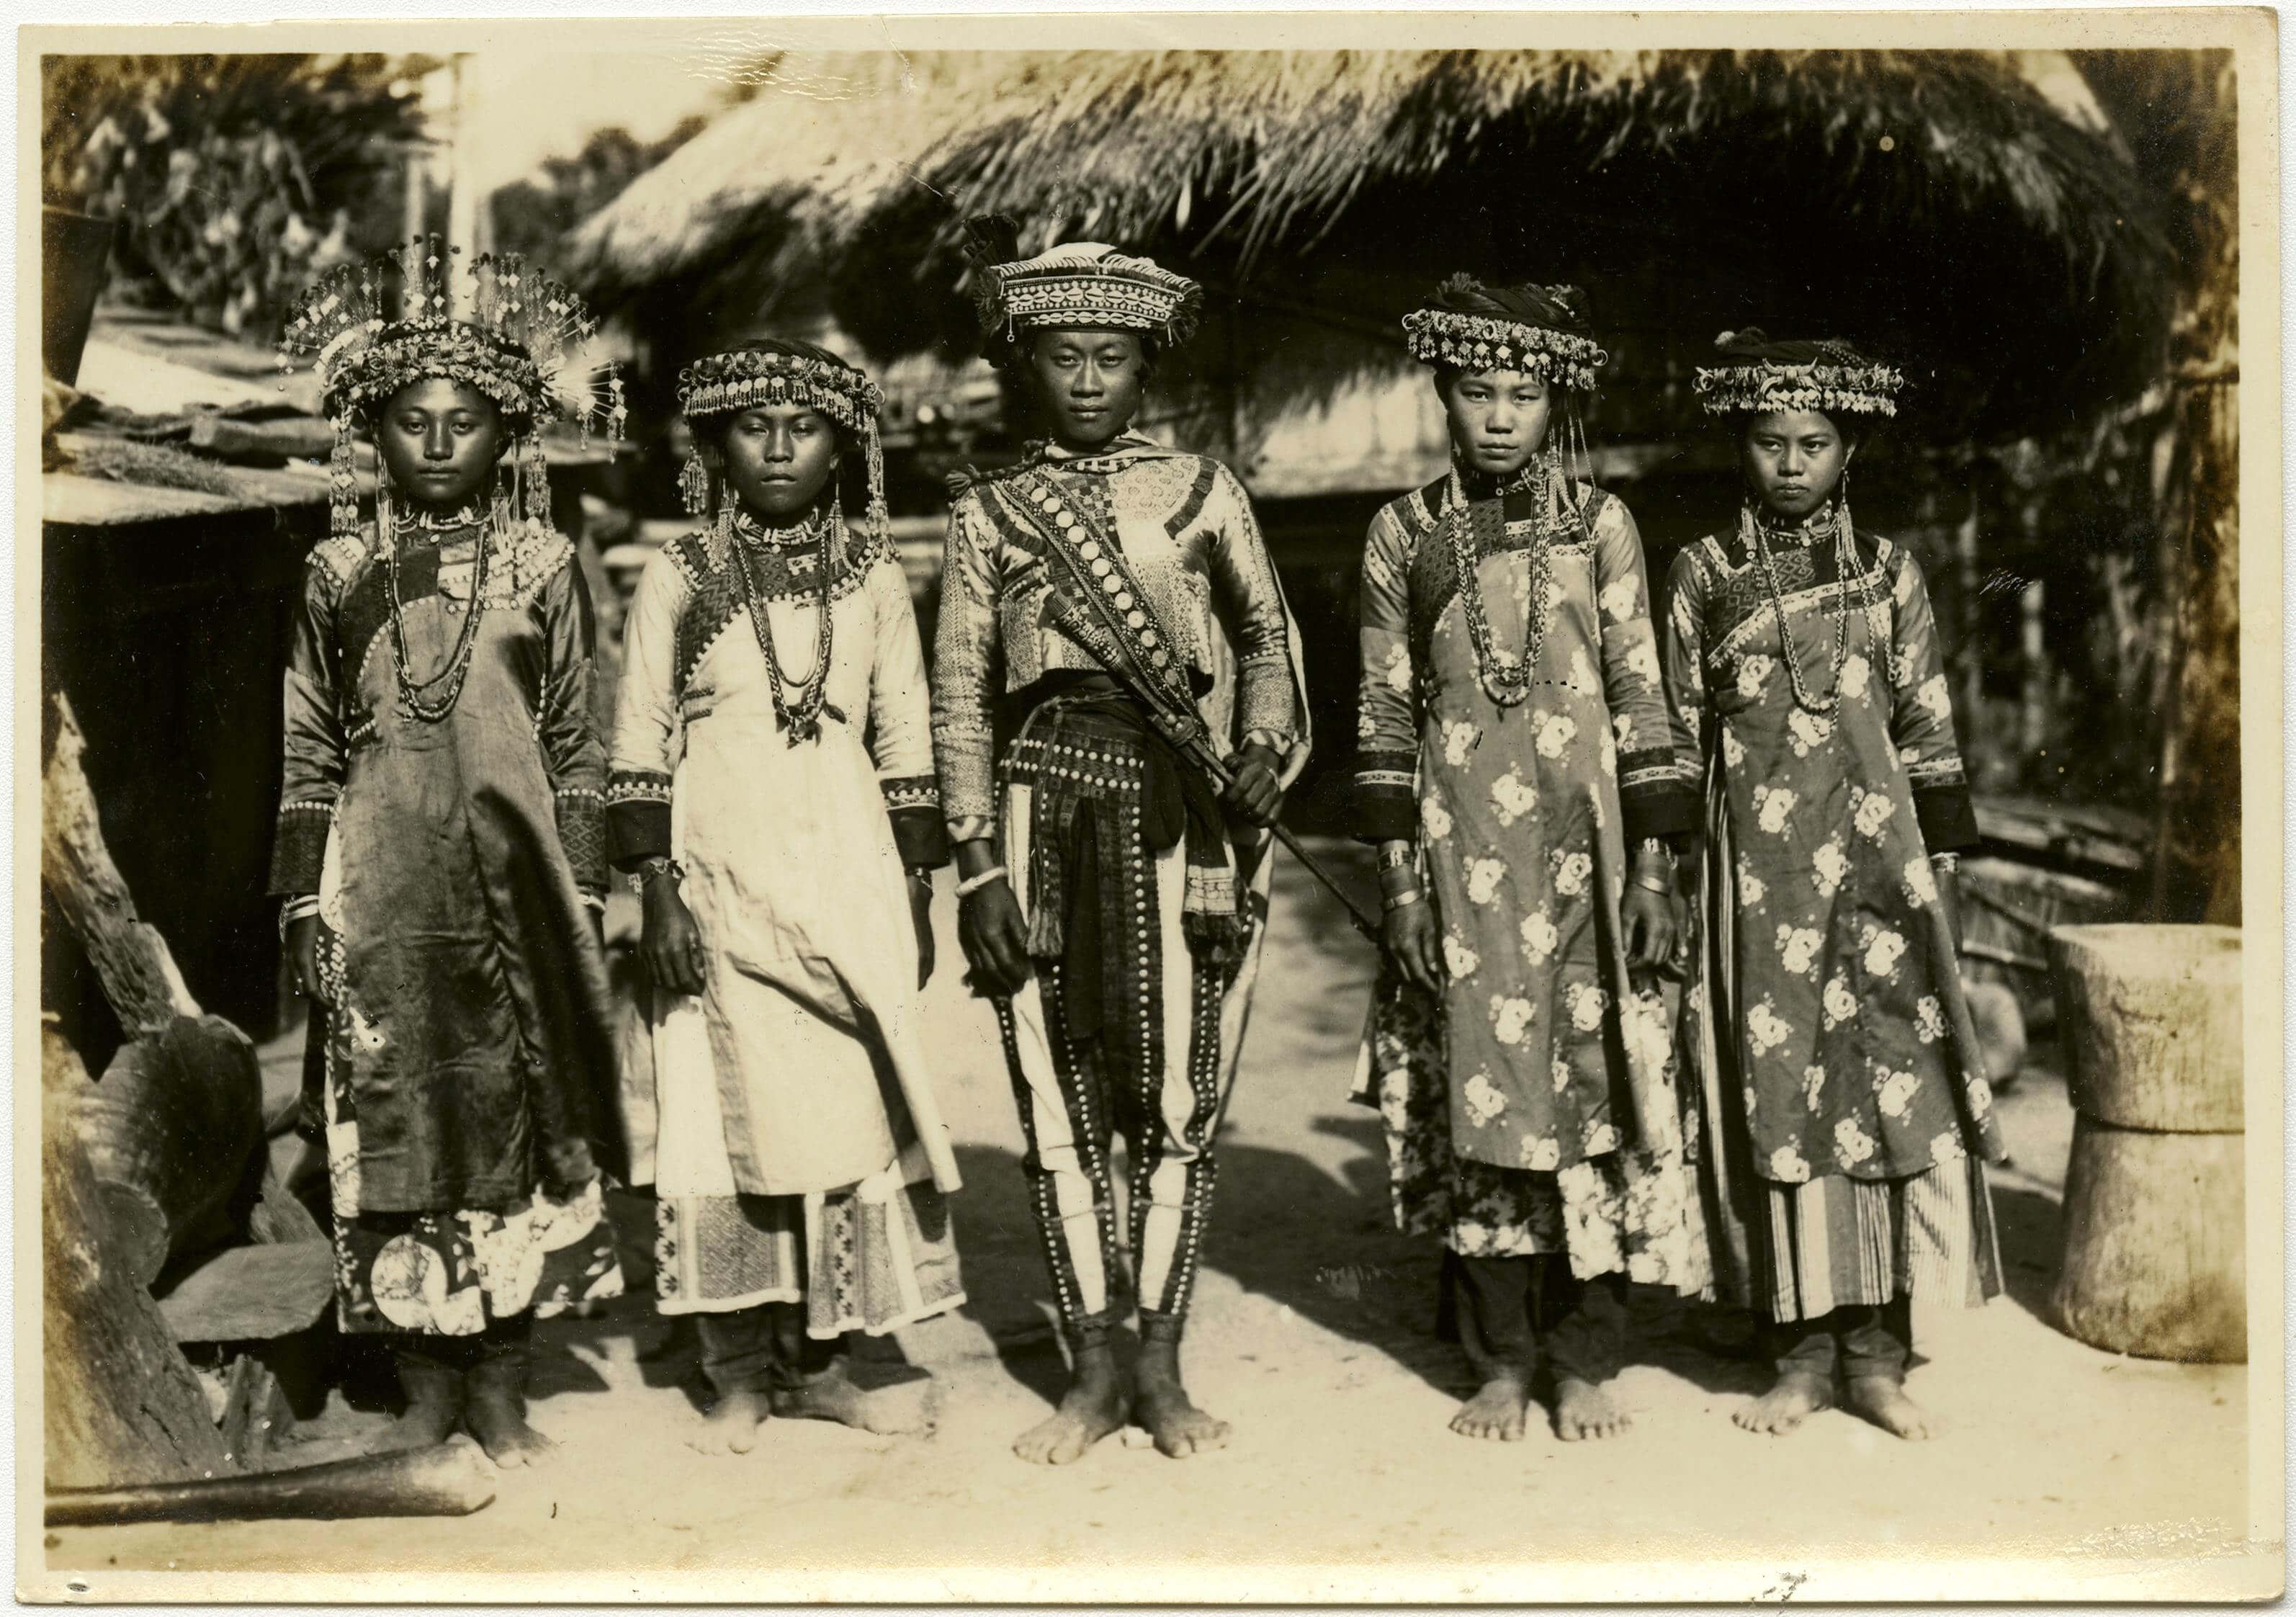 The Paiwan Youth Wearing Formal Costume